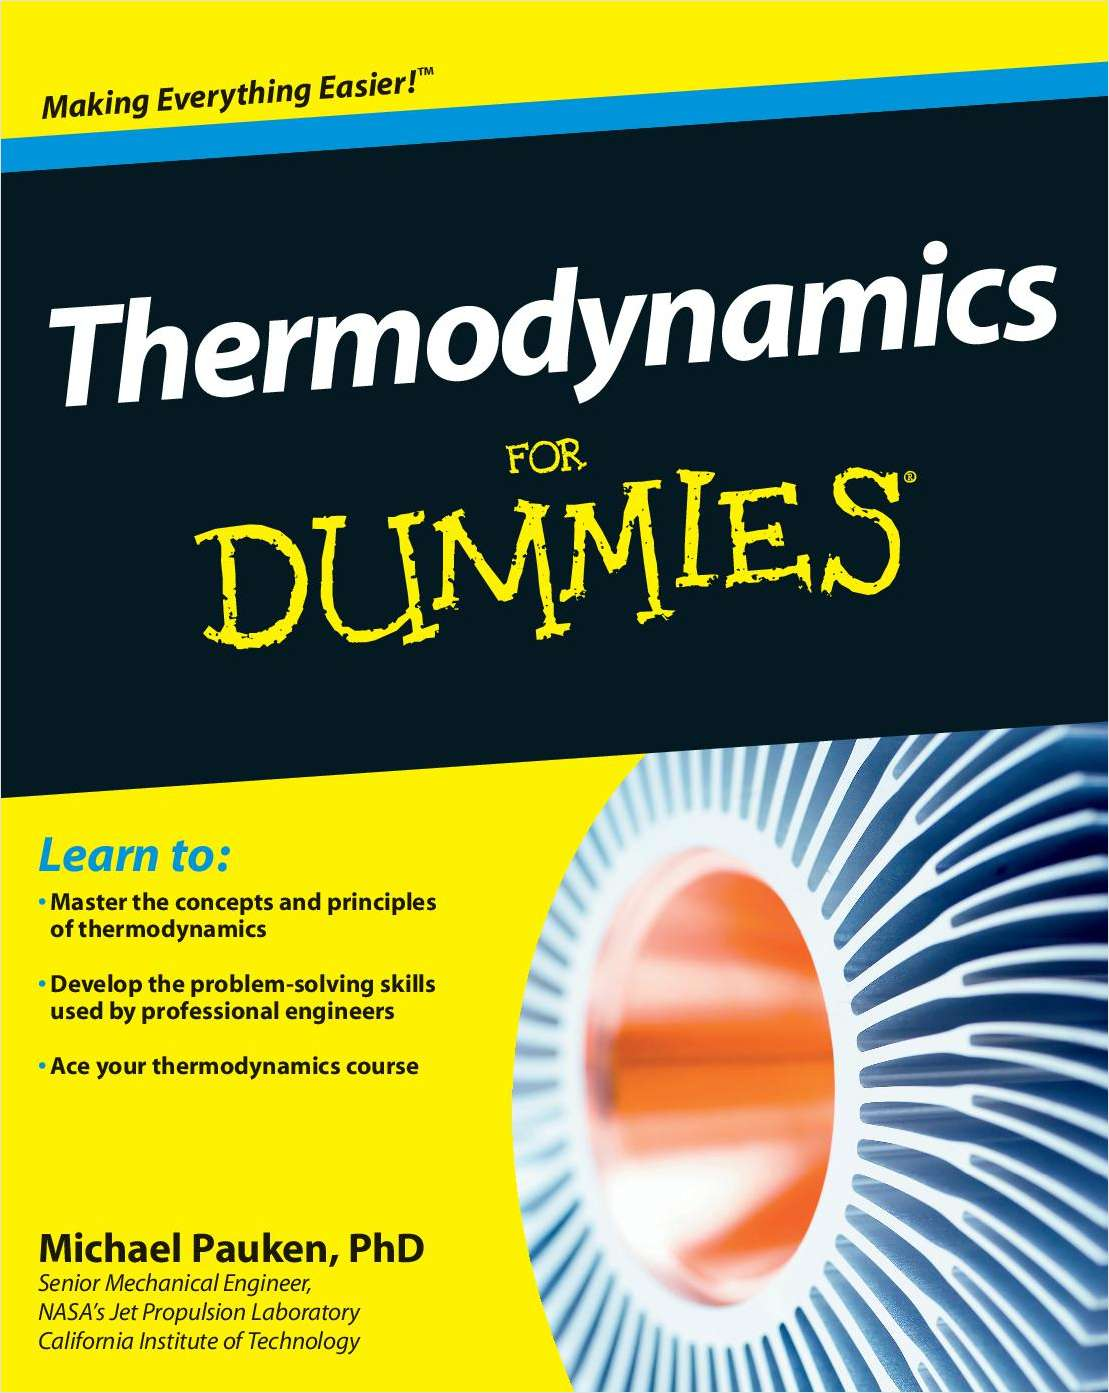 Thermodynamics For Dummies -- Free Sample Chapter